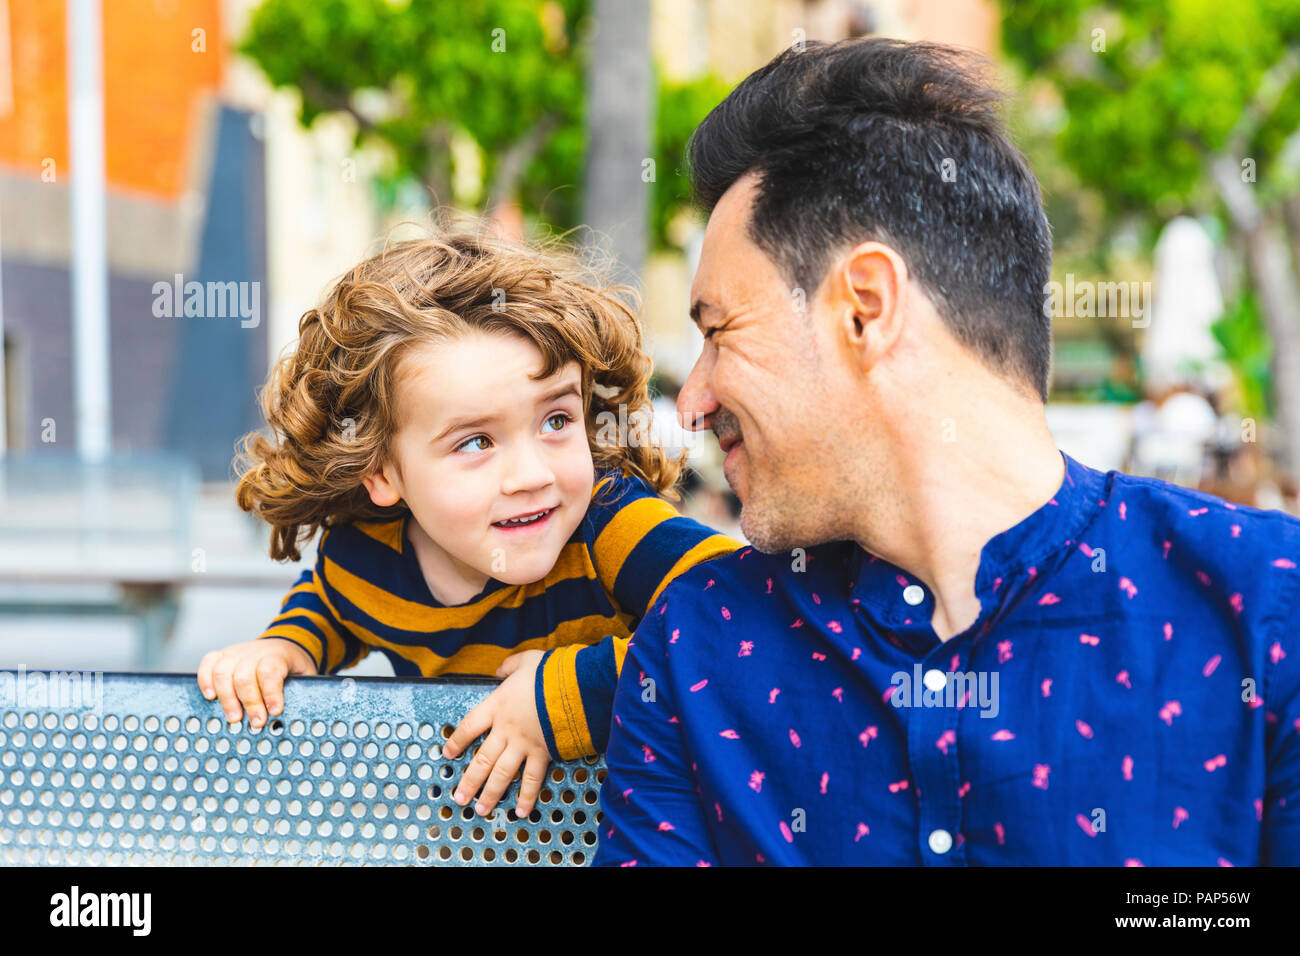 Father and son playing and looking at each other - Stock Image